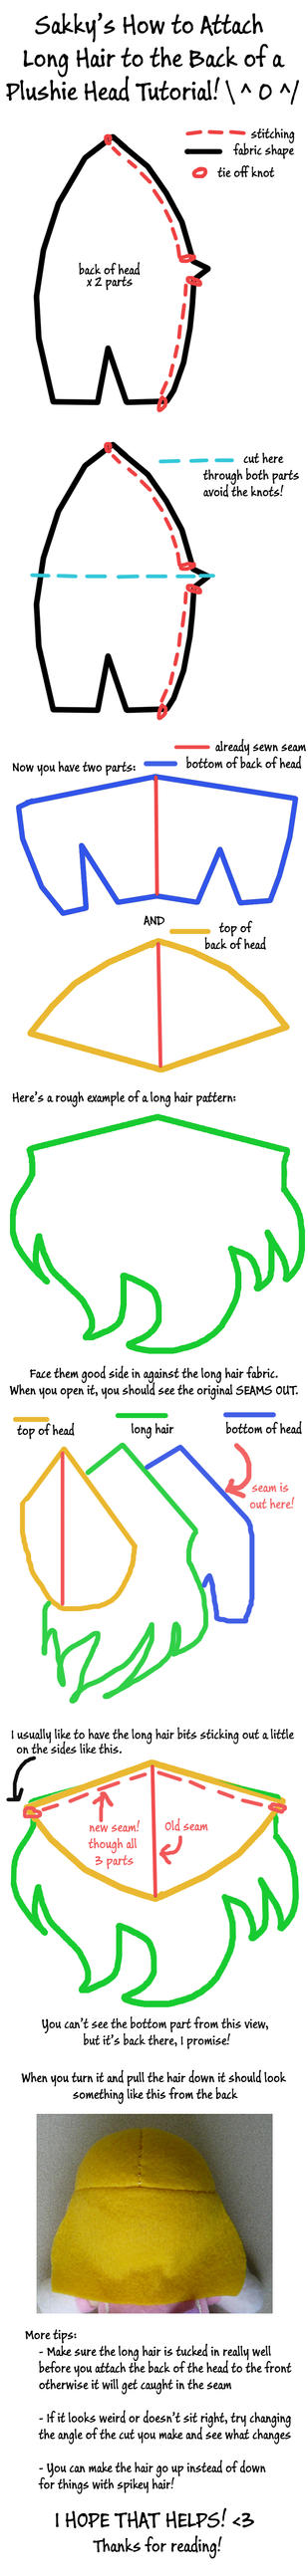 Attaching Long Hair to a Plush Head Tutorial by SarahsPlushNStuff